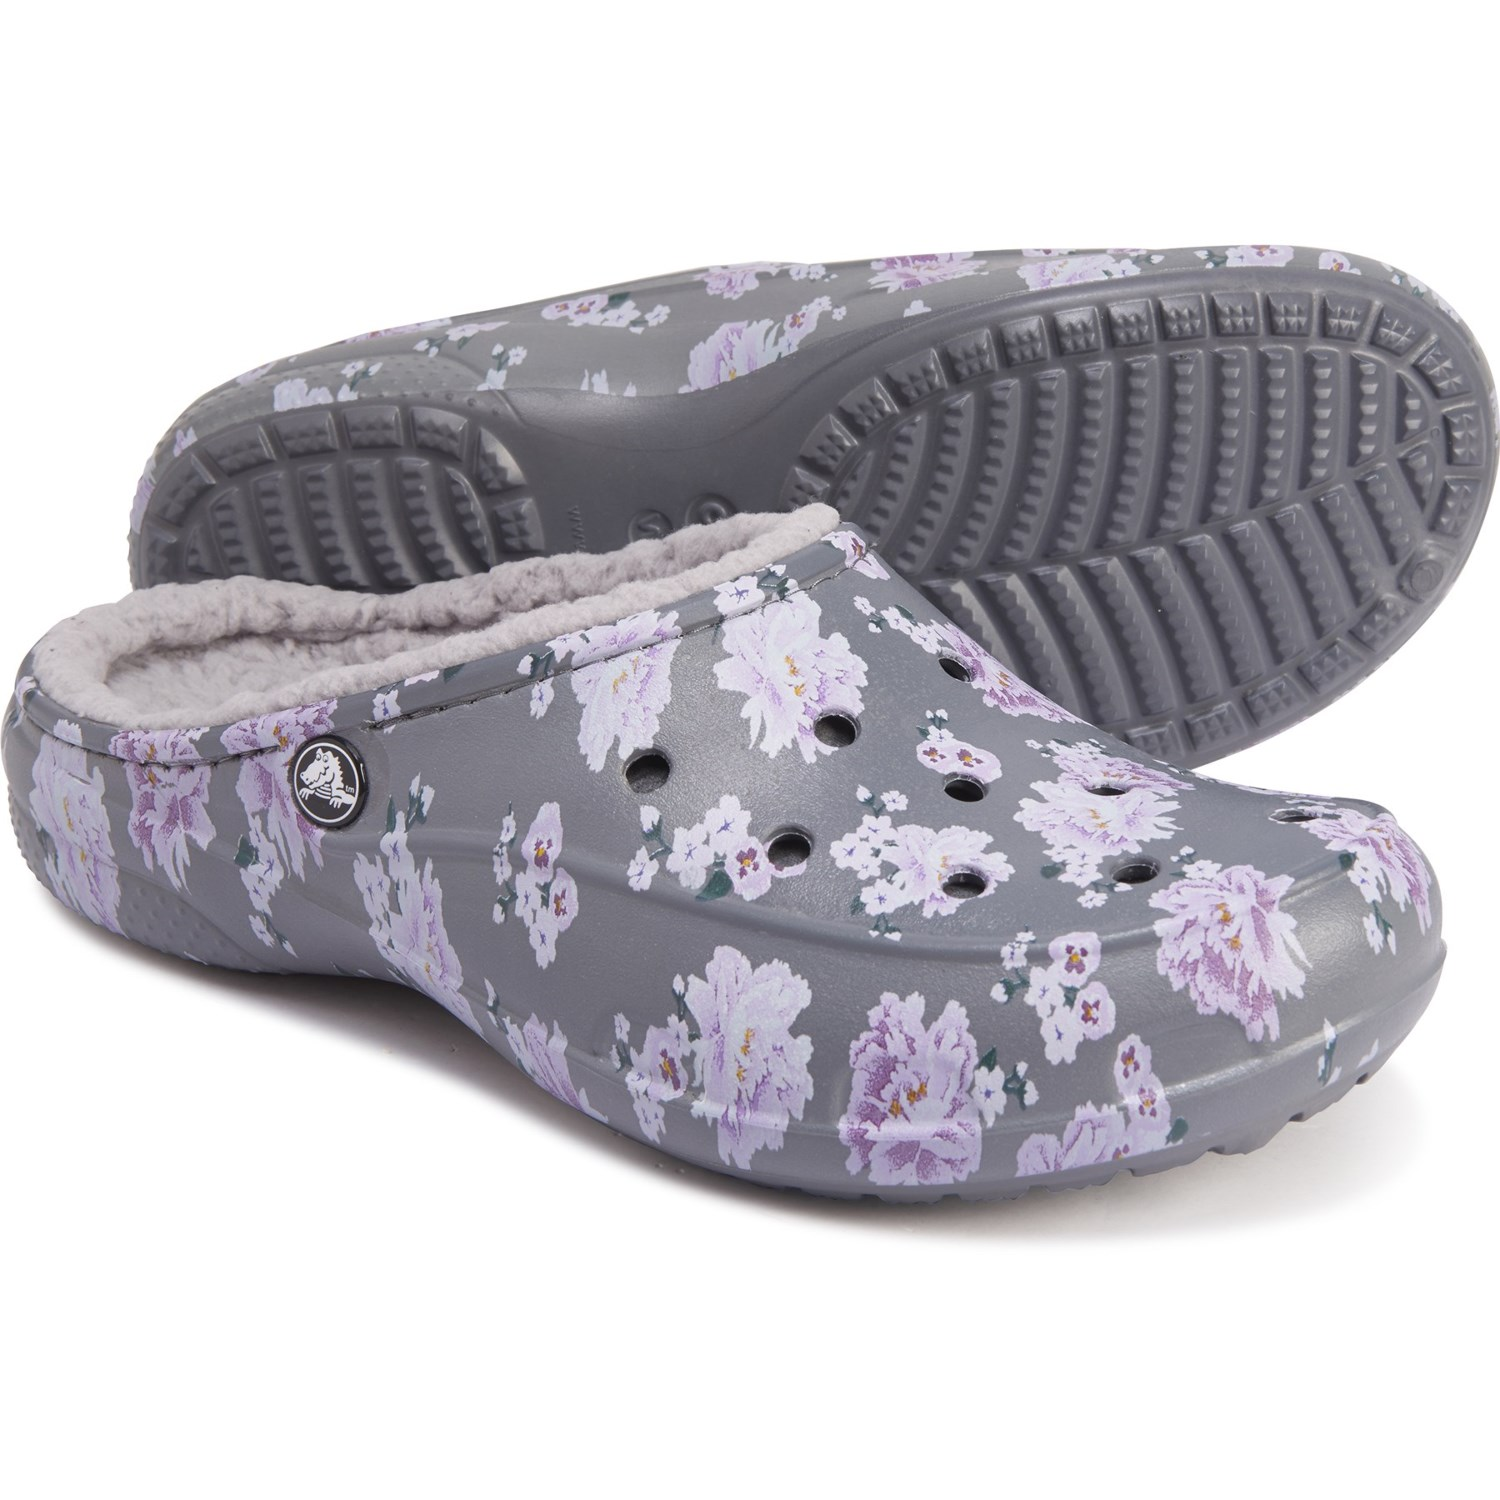 Crocs Freesail Printed Lined Clogs For Women Save 50